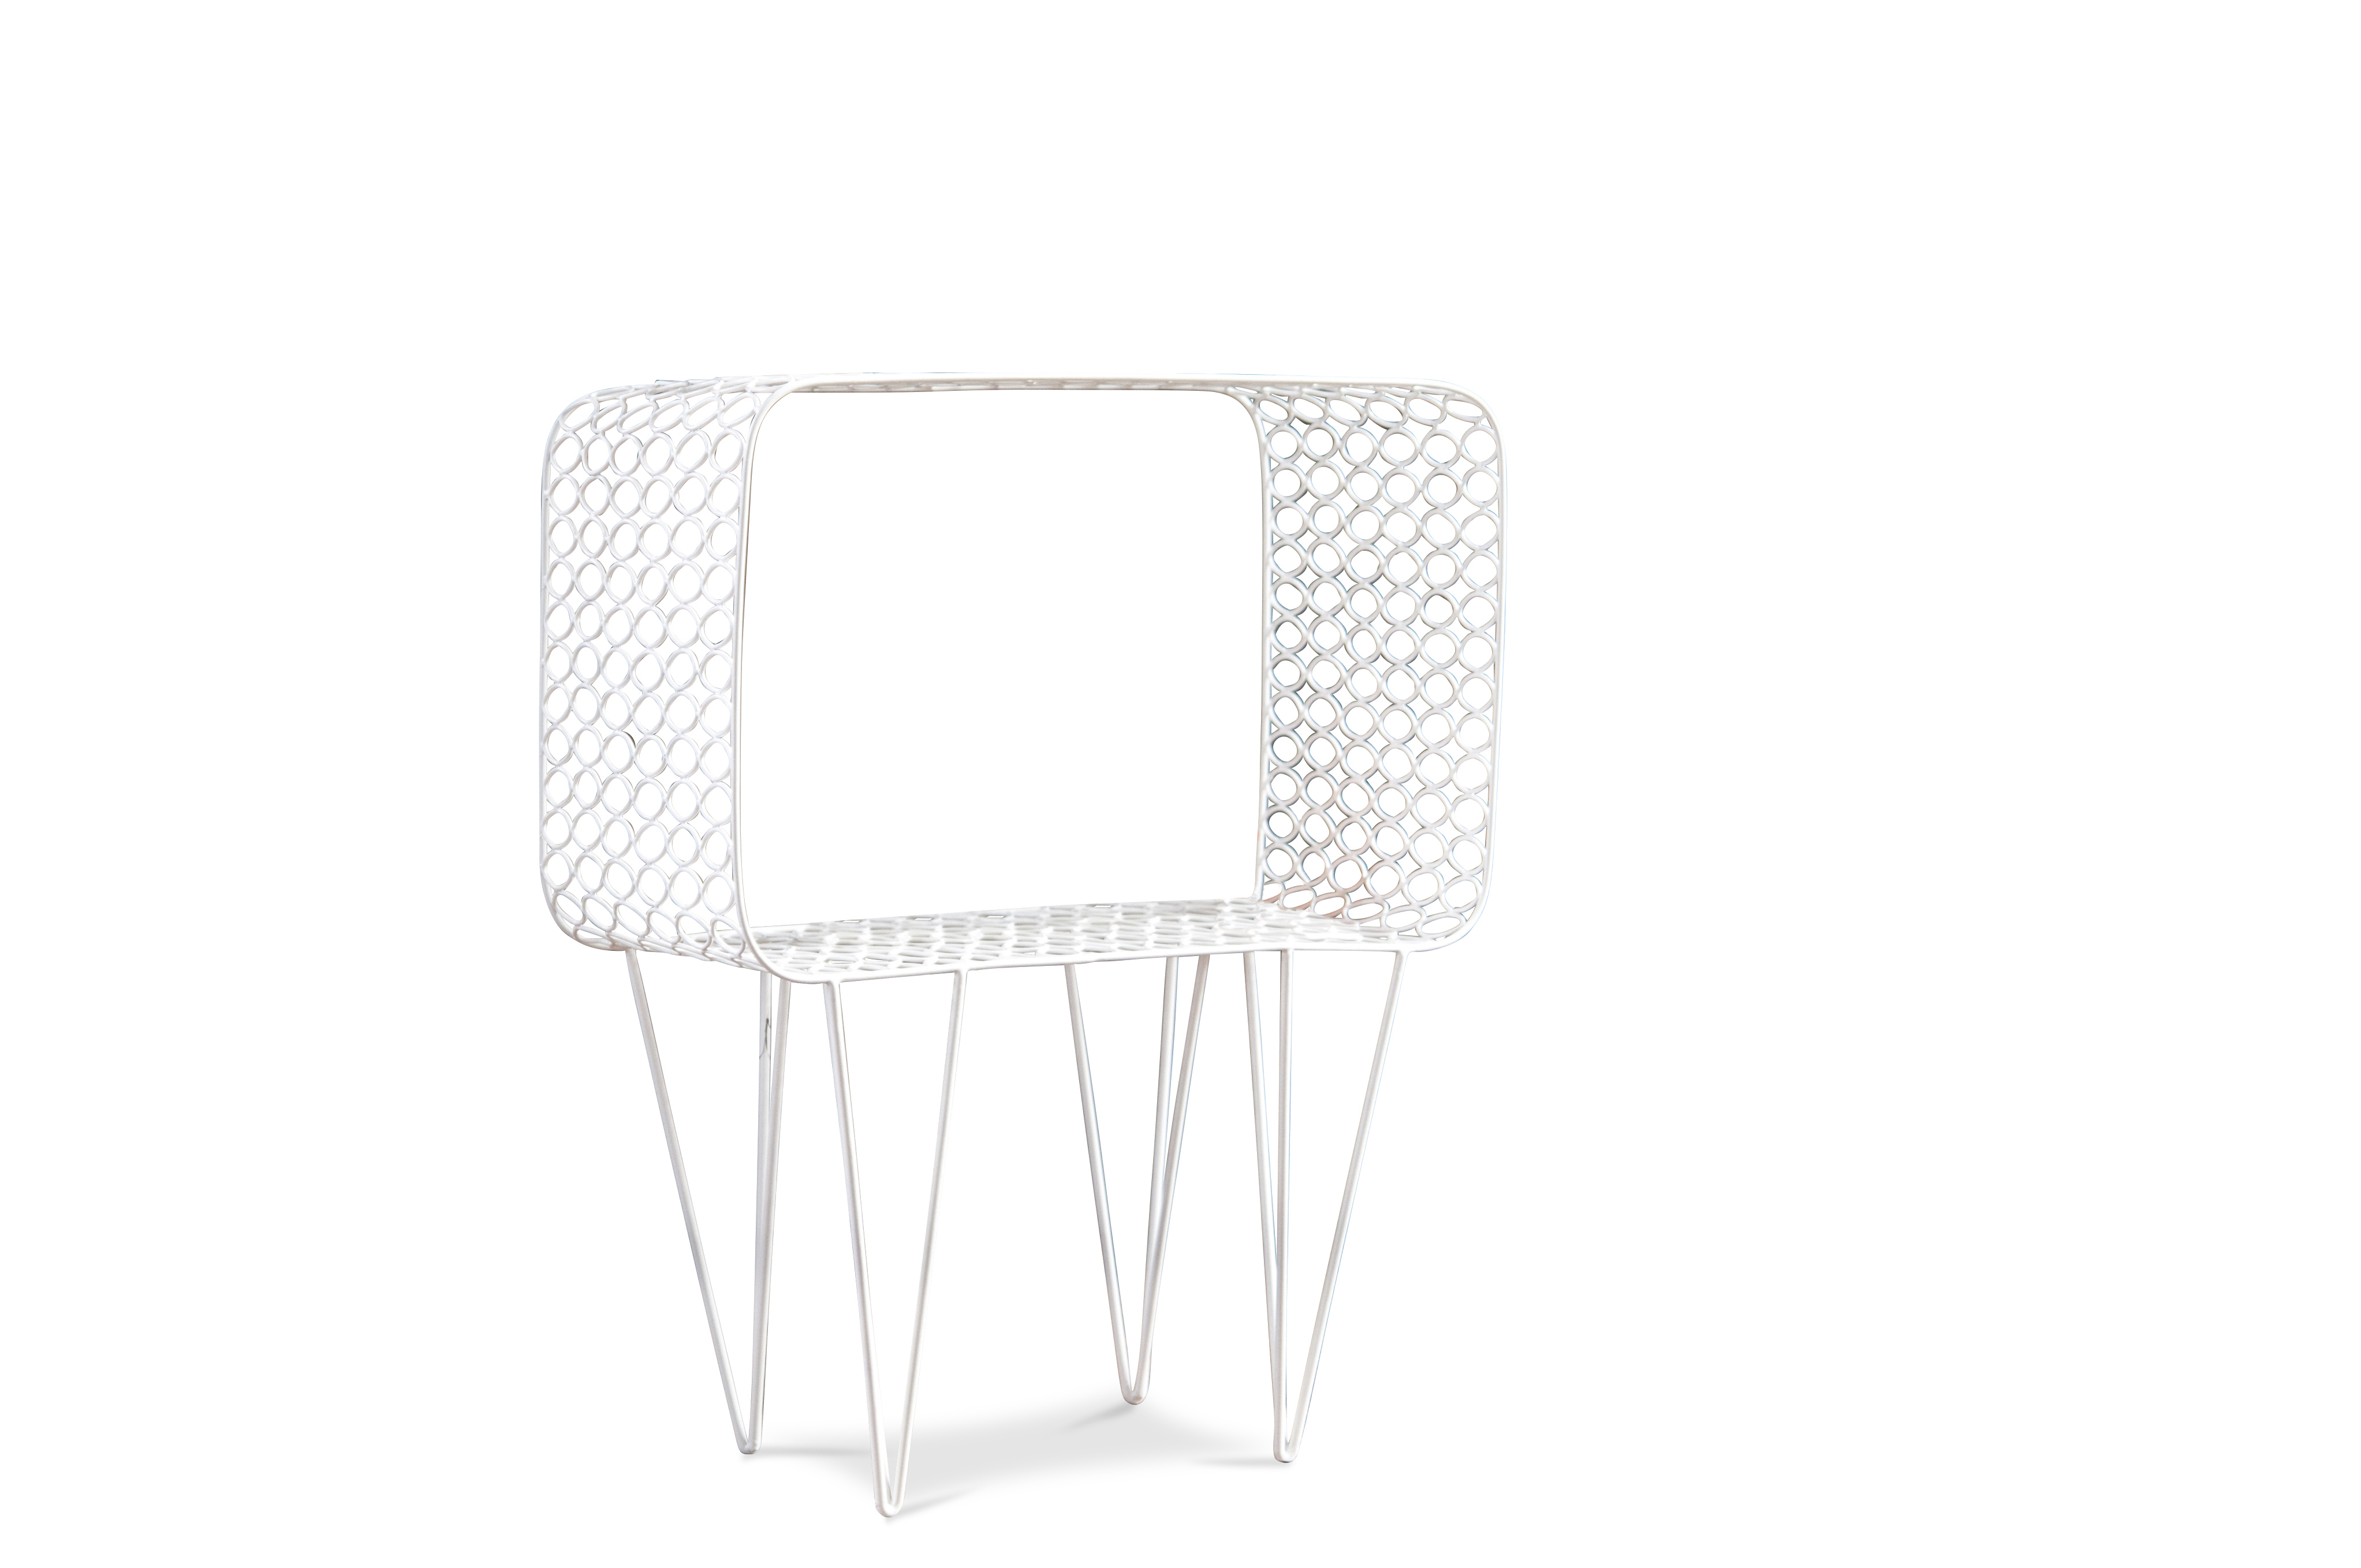 Table d'appoint en métal blanc